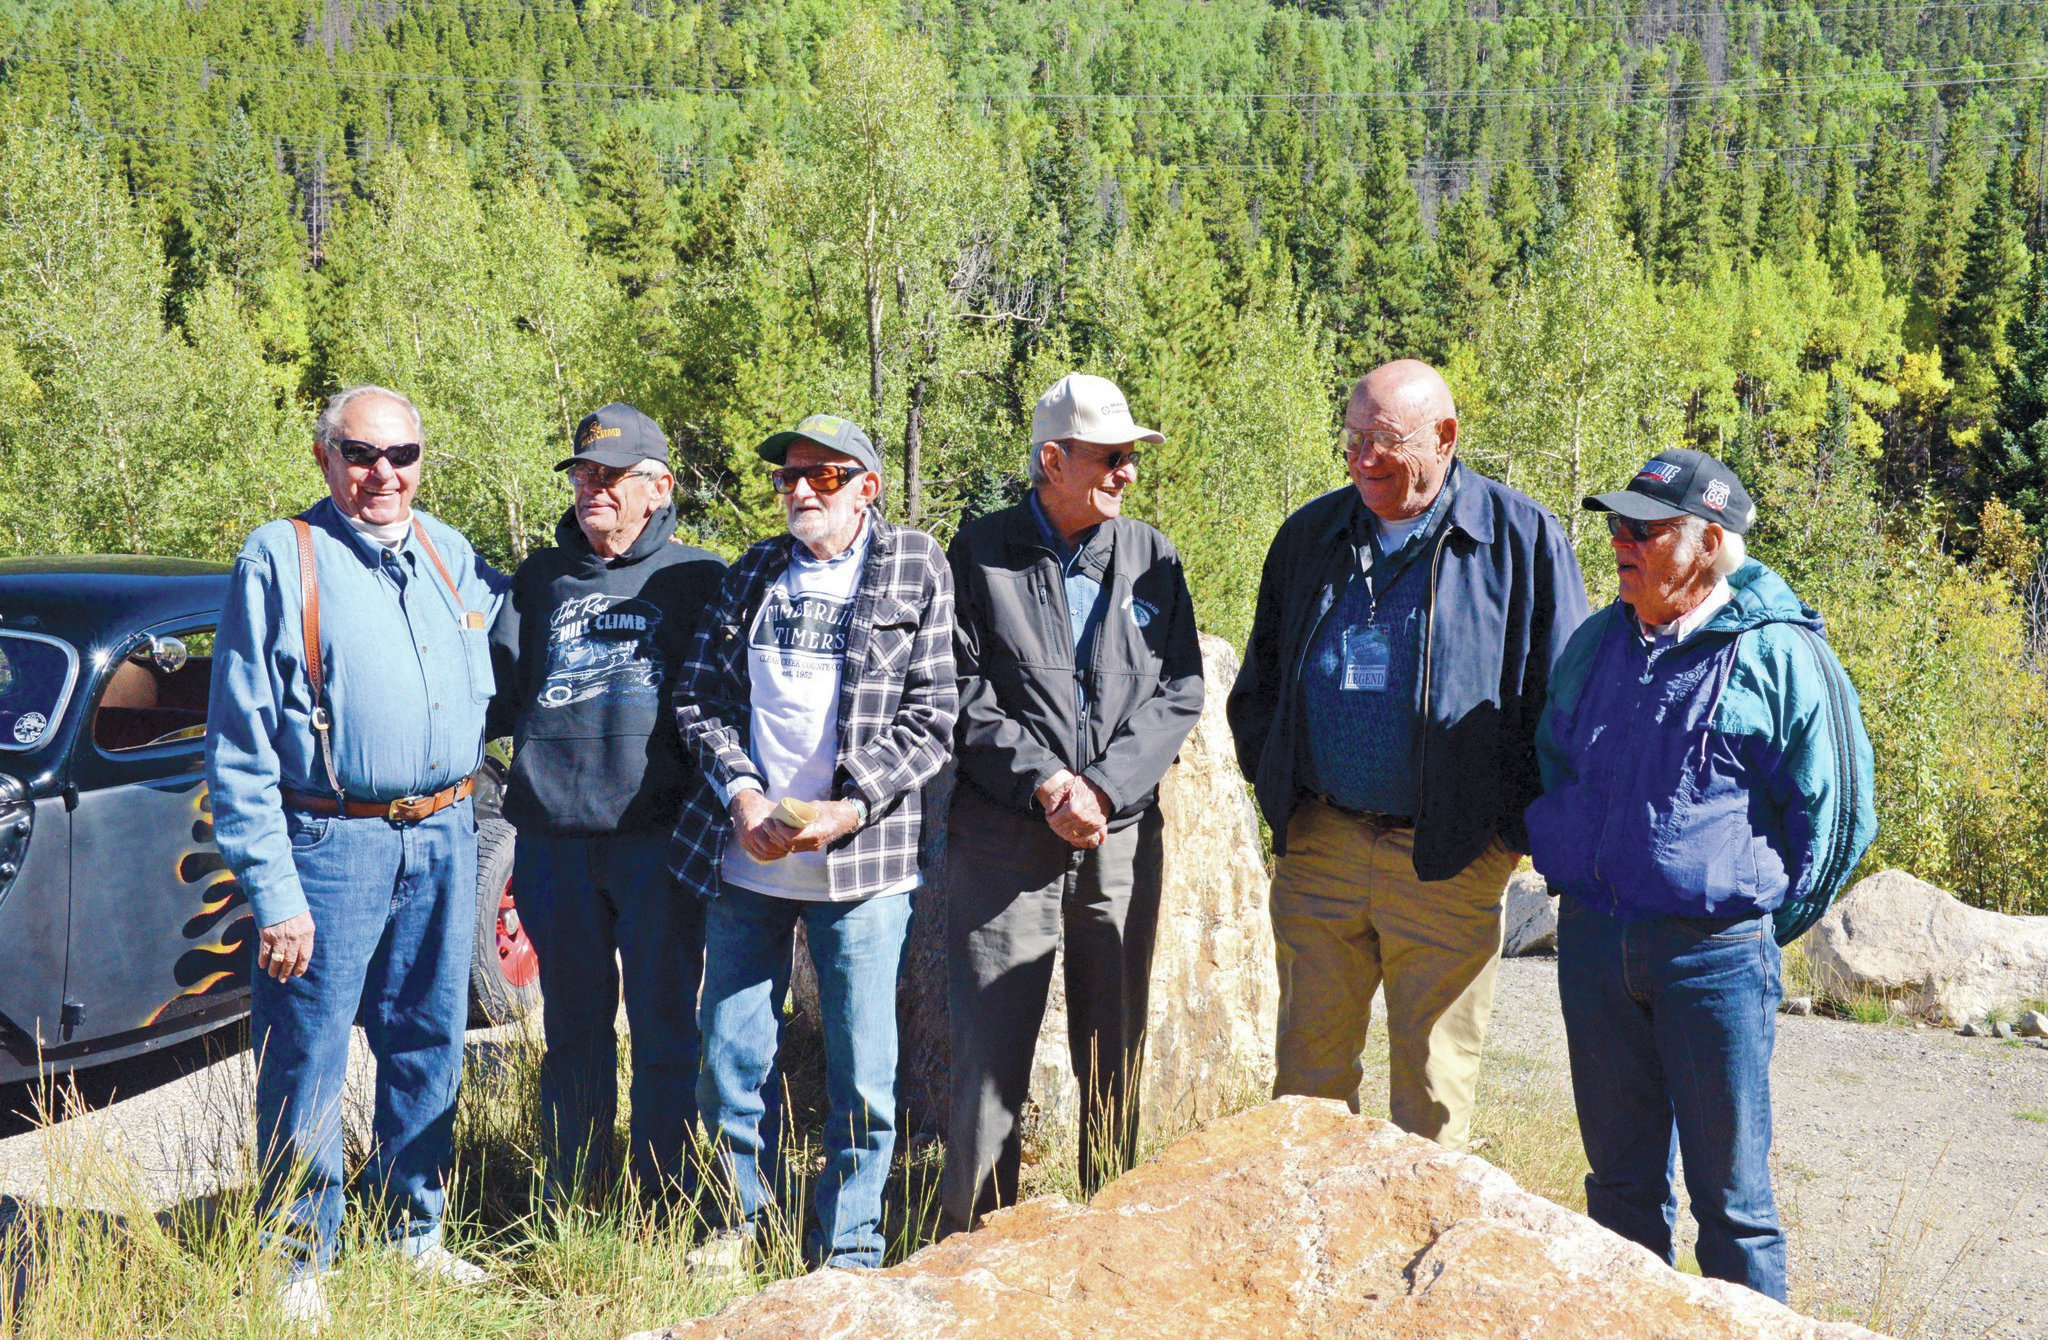 Several rodders who were at the HRHC in 1954 returned this year, including (from left): Vern Holmes, Cal Kennedy, Tom O'Donnell, Duayne Nusbaum, Jim Nielsen, and Reo Zentz.